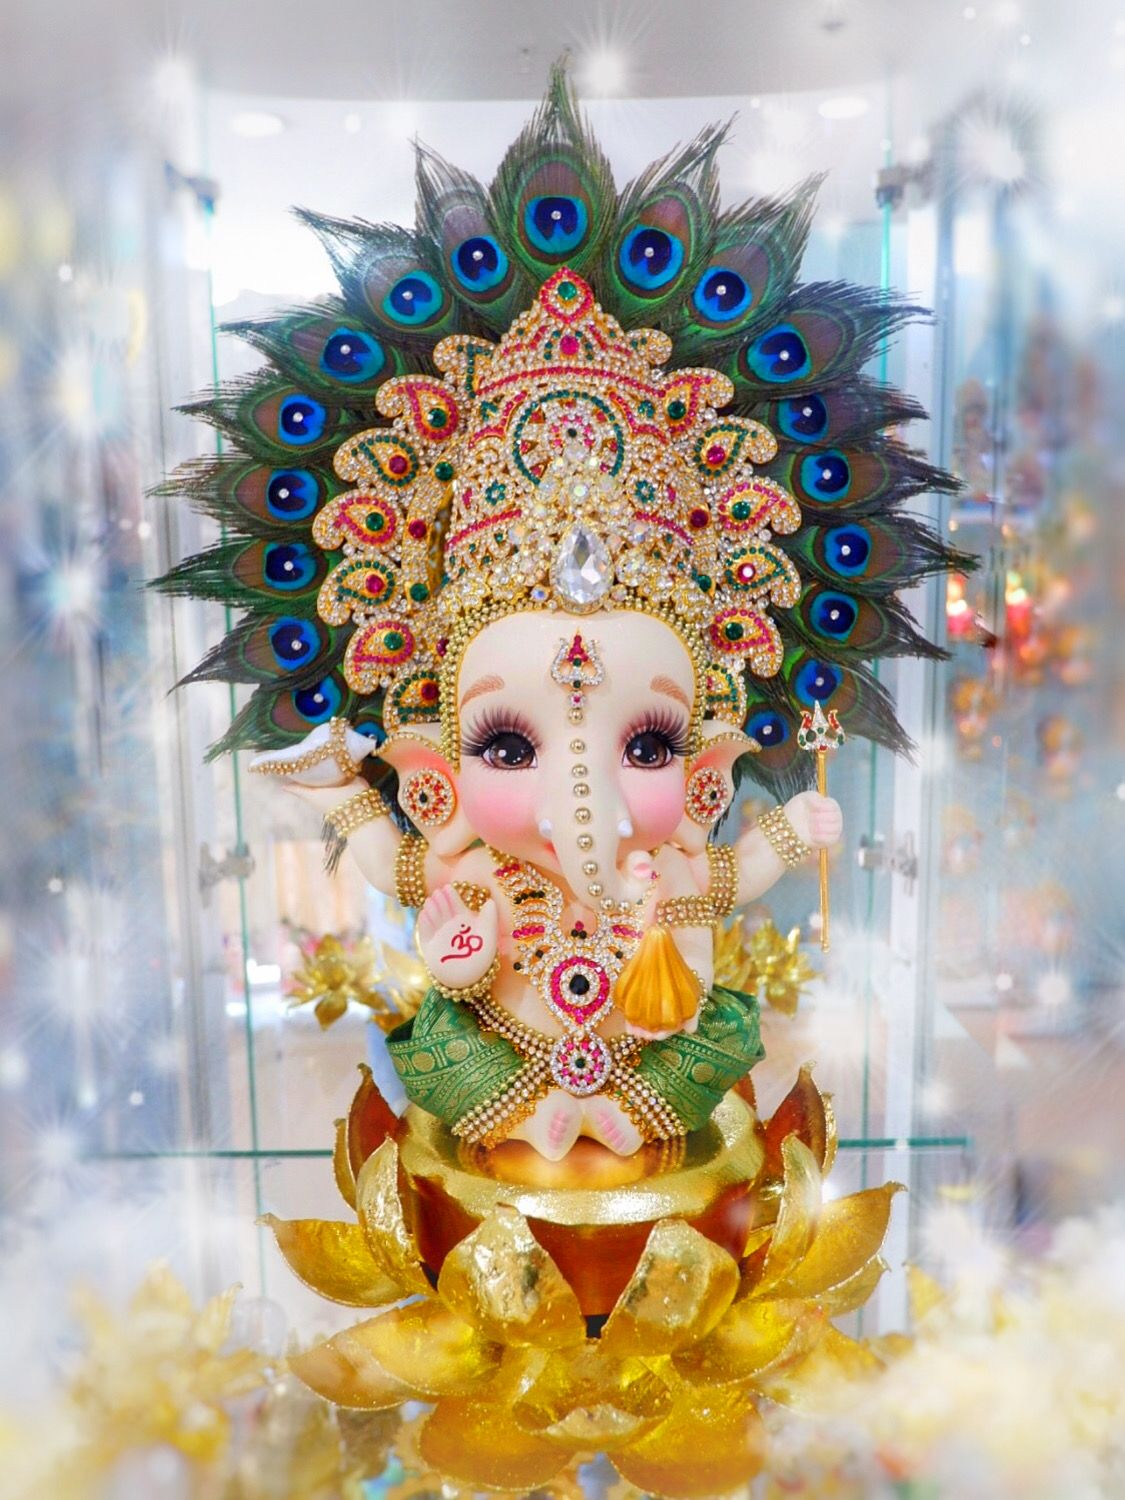 Paintings Top 20 Photos Of Cute Ganesha To Use For Instagram And Whatsapp Story Happy Ganesh Chaturthi Images Ganesh Chaturthi Images Happy Ganesh Chaturthi